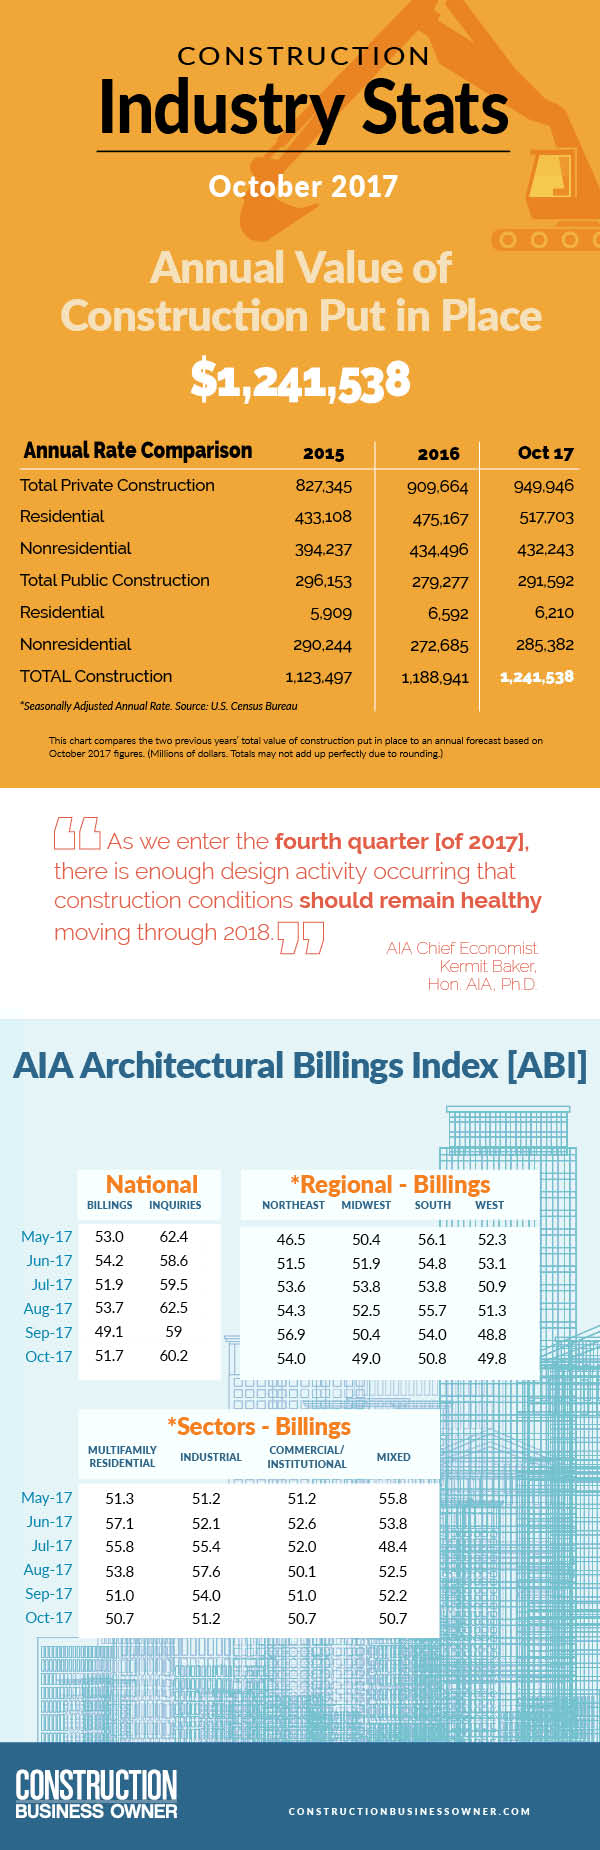 January 2018 construction industry stats